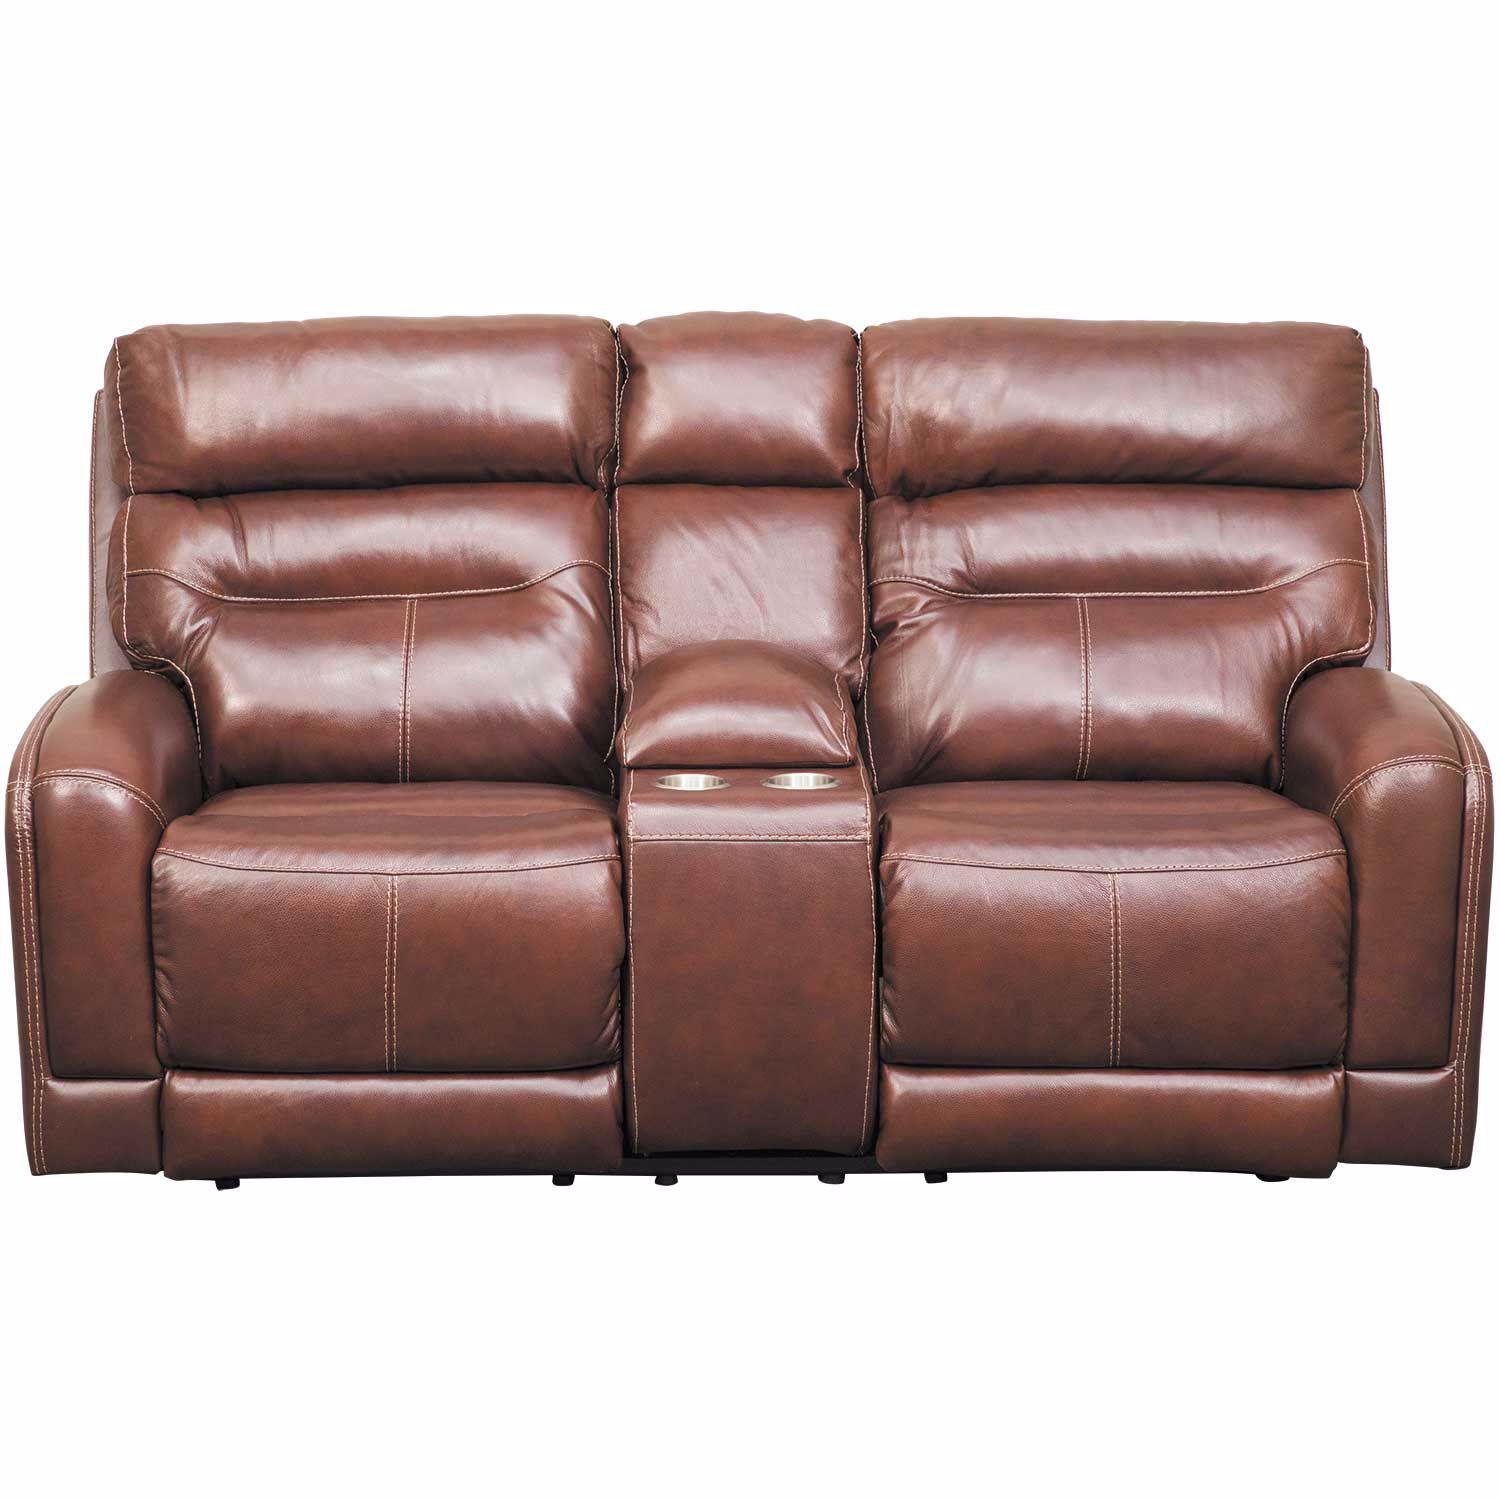 Miraculous Sessom Leather Power Reclining Console Loveseat With Adjustable Headrest And Lumbar Ibusinesslaw Wood Chair Design Ideas Ibusinesslaworg